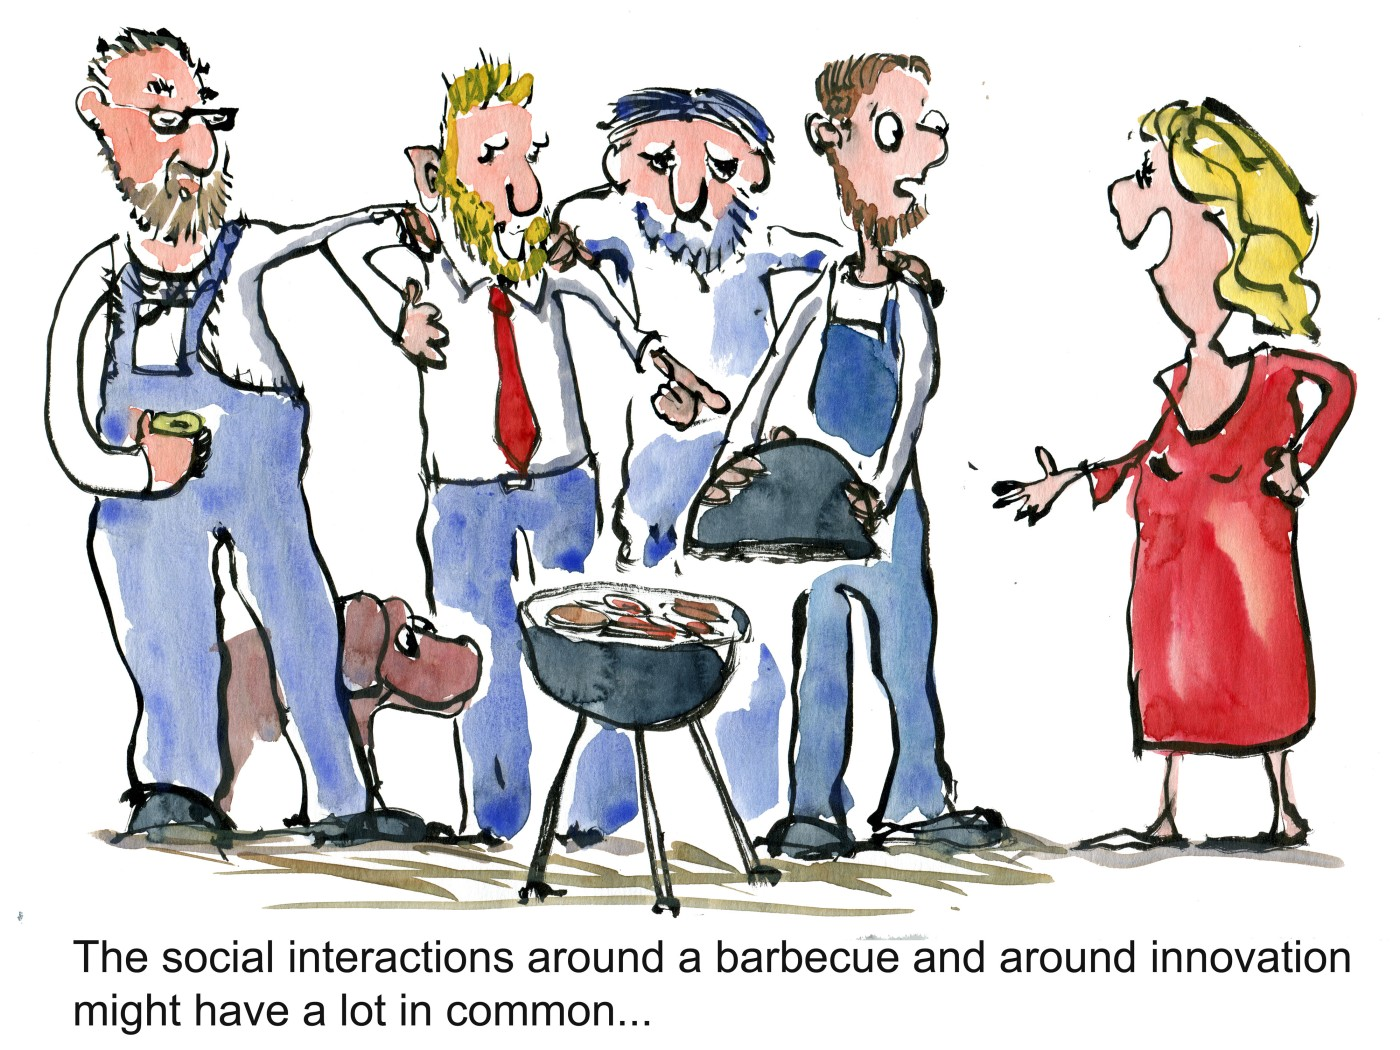 Group of men around barbecue same clothing, looking at a woman in red, making comments about it. Illustration by Frits Ahlefeldt